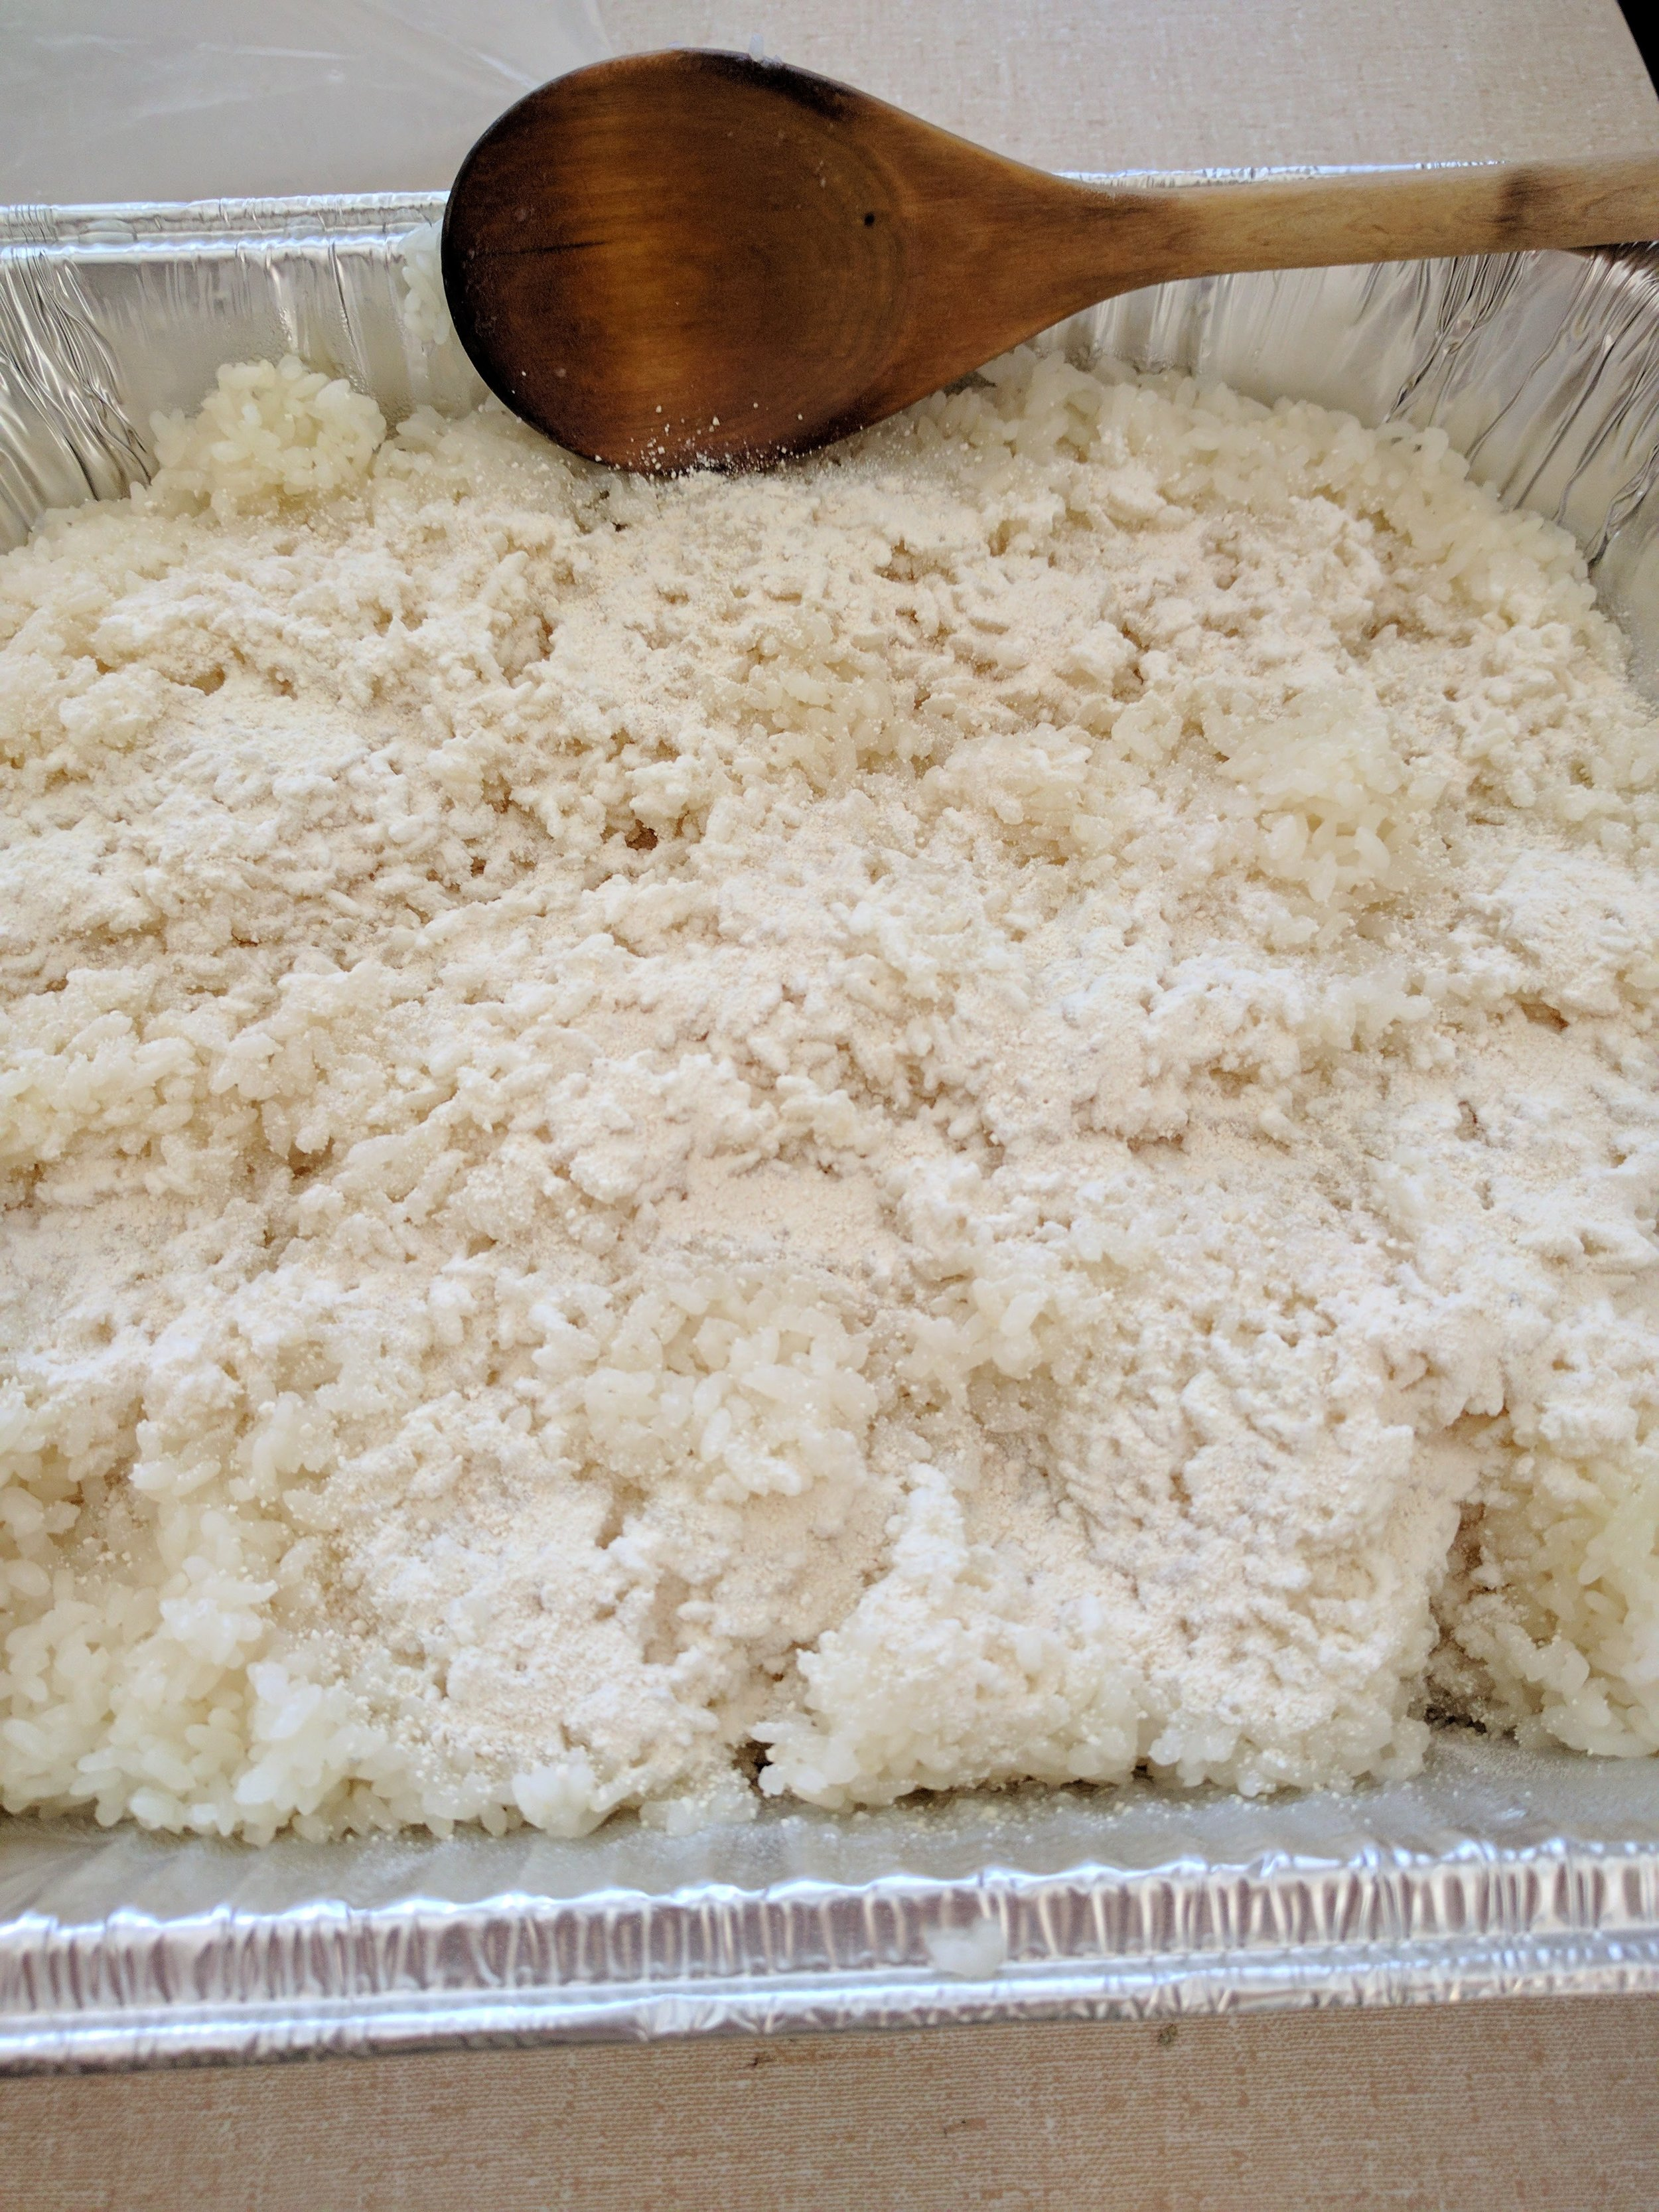 Yeast sprinkled into the  cooled  rice.